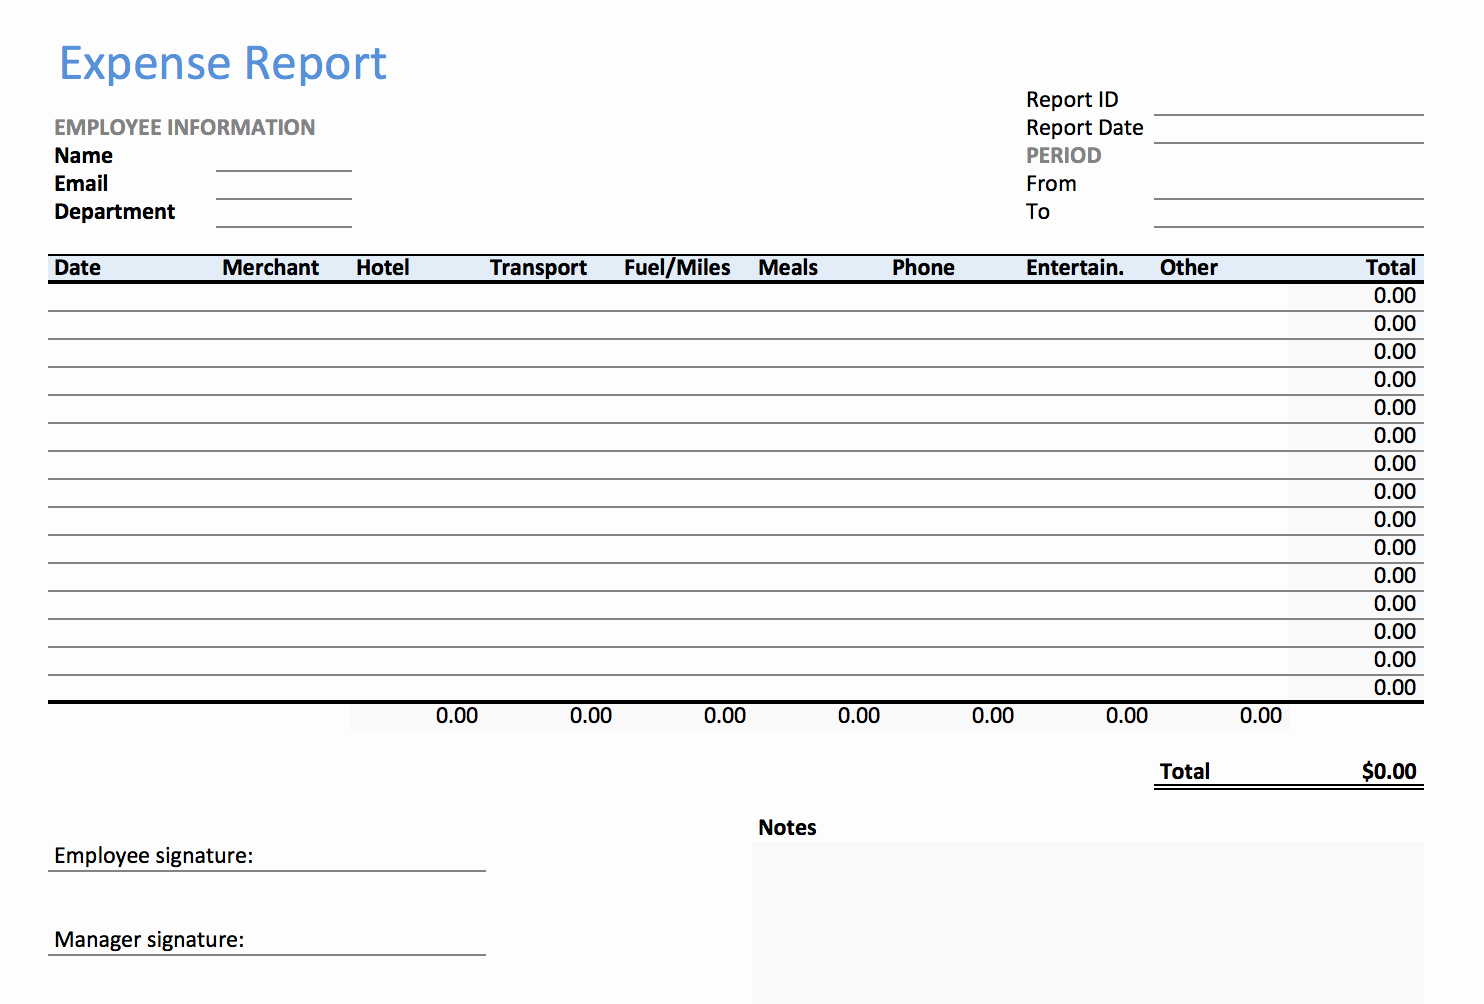 Free Excel Expense Report Template New Excel Expense Report Template Keepek